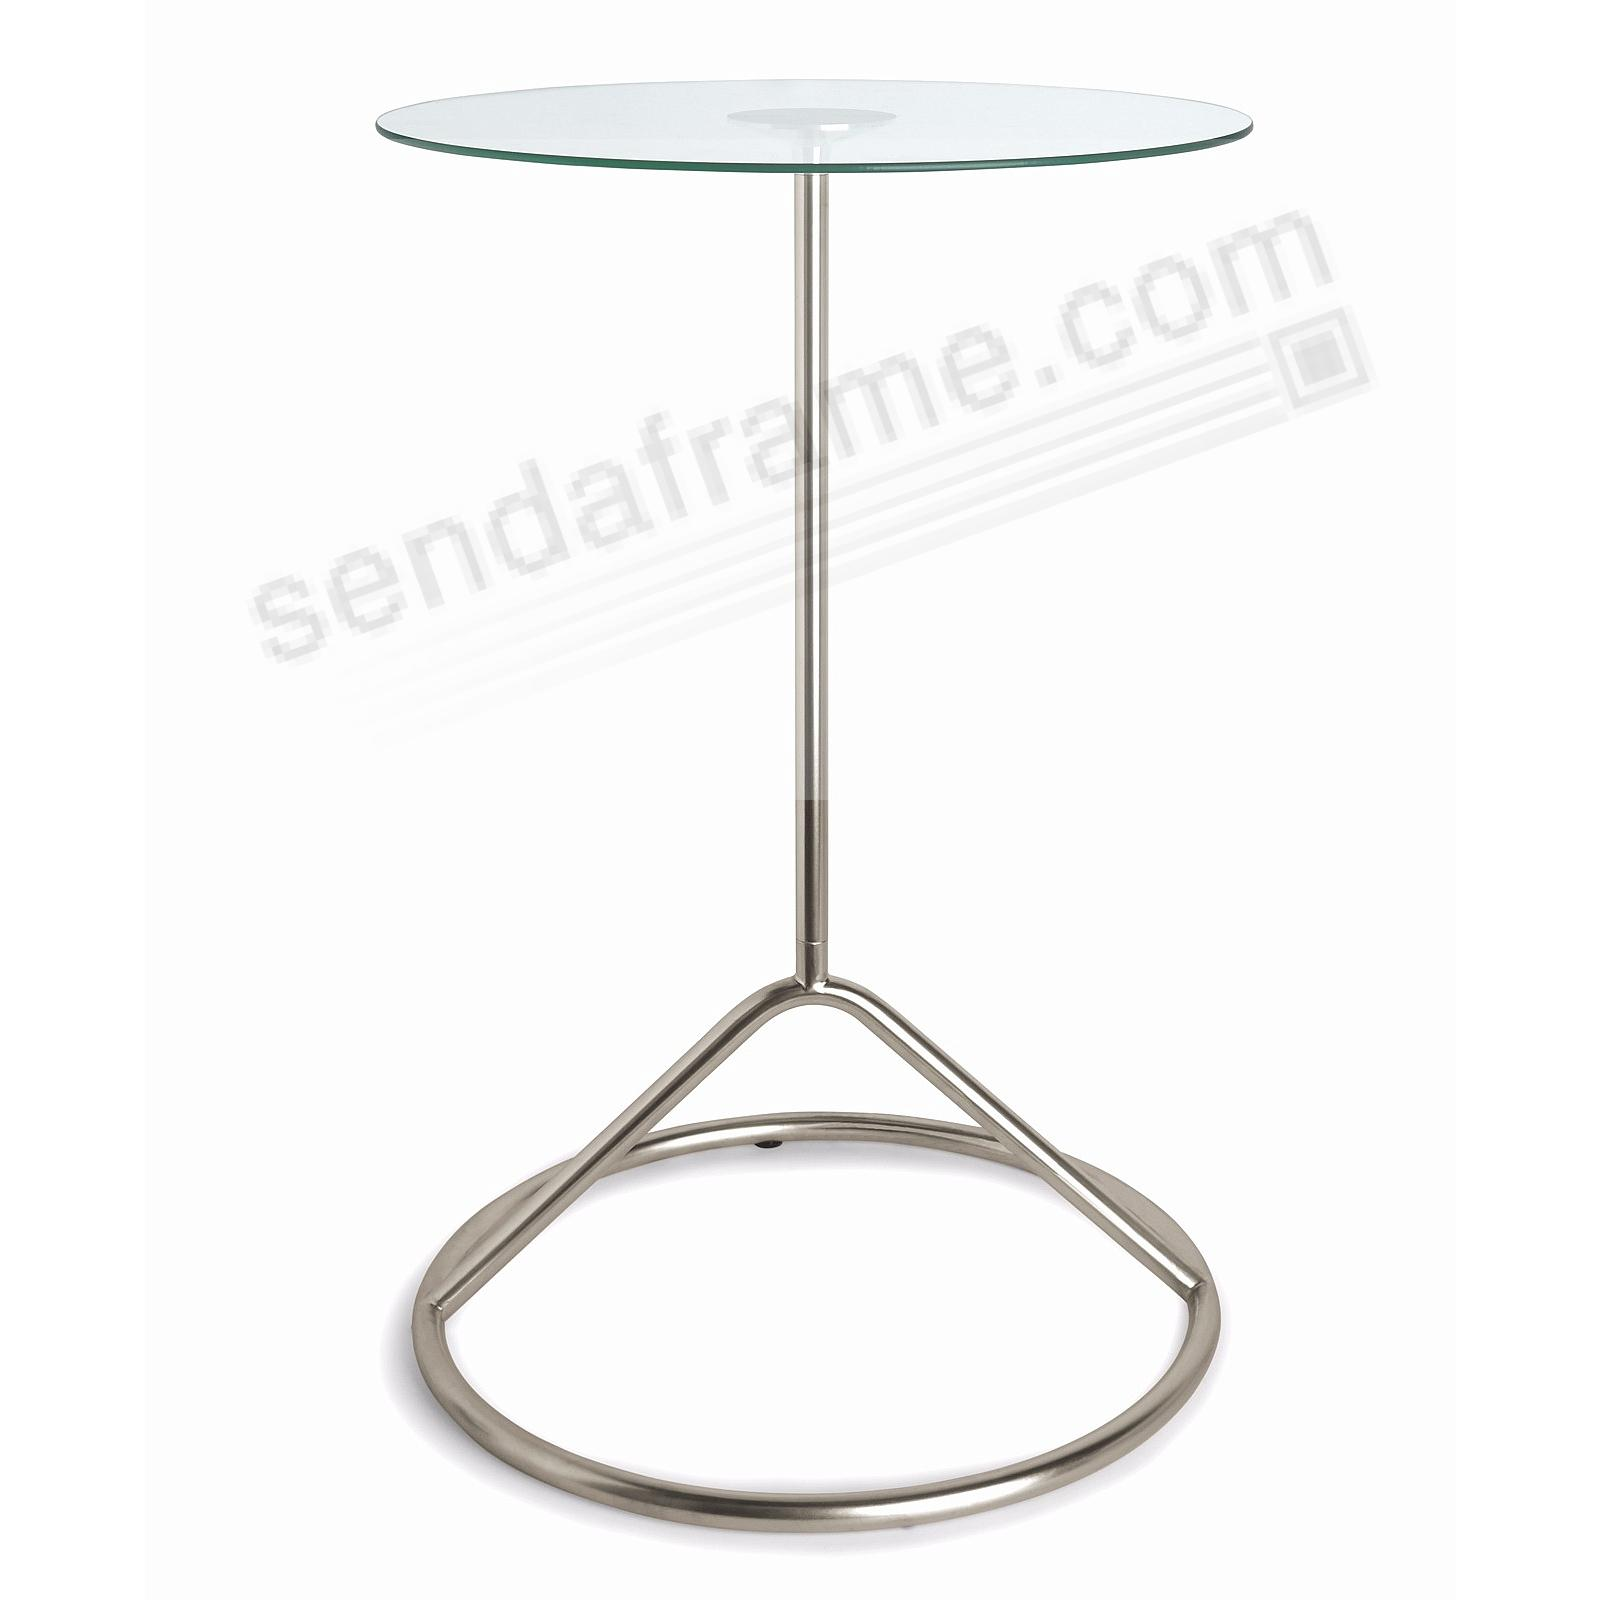 The Original LOOP SIDE Nickel Side Table by Umbra+®